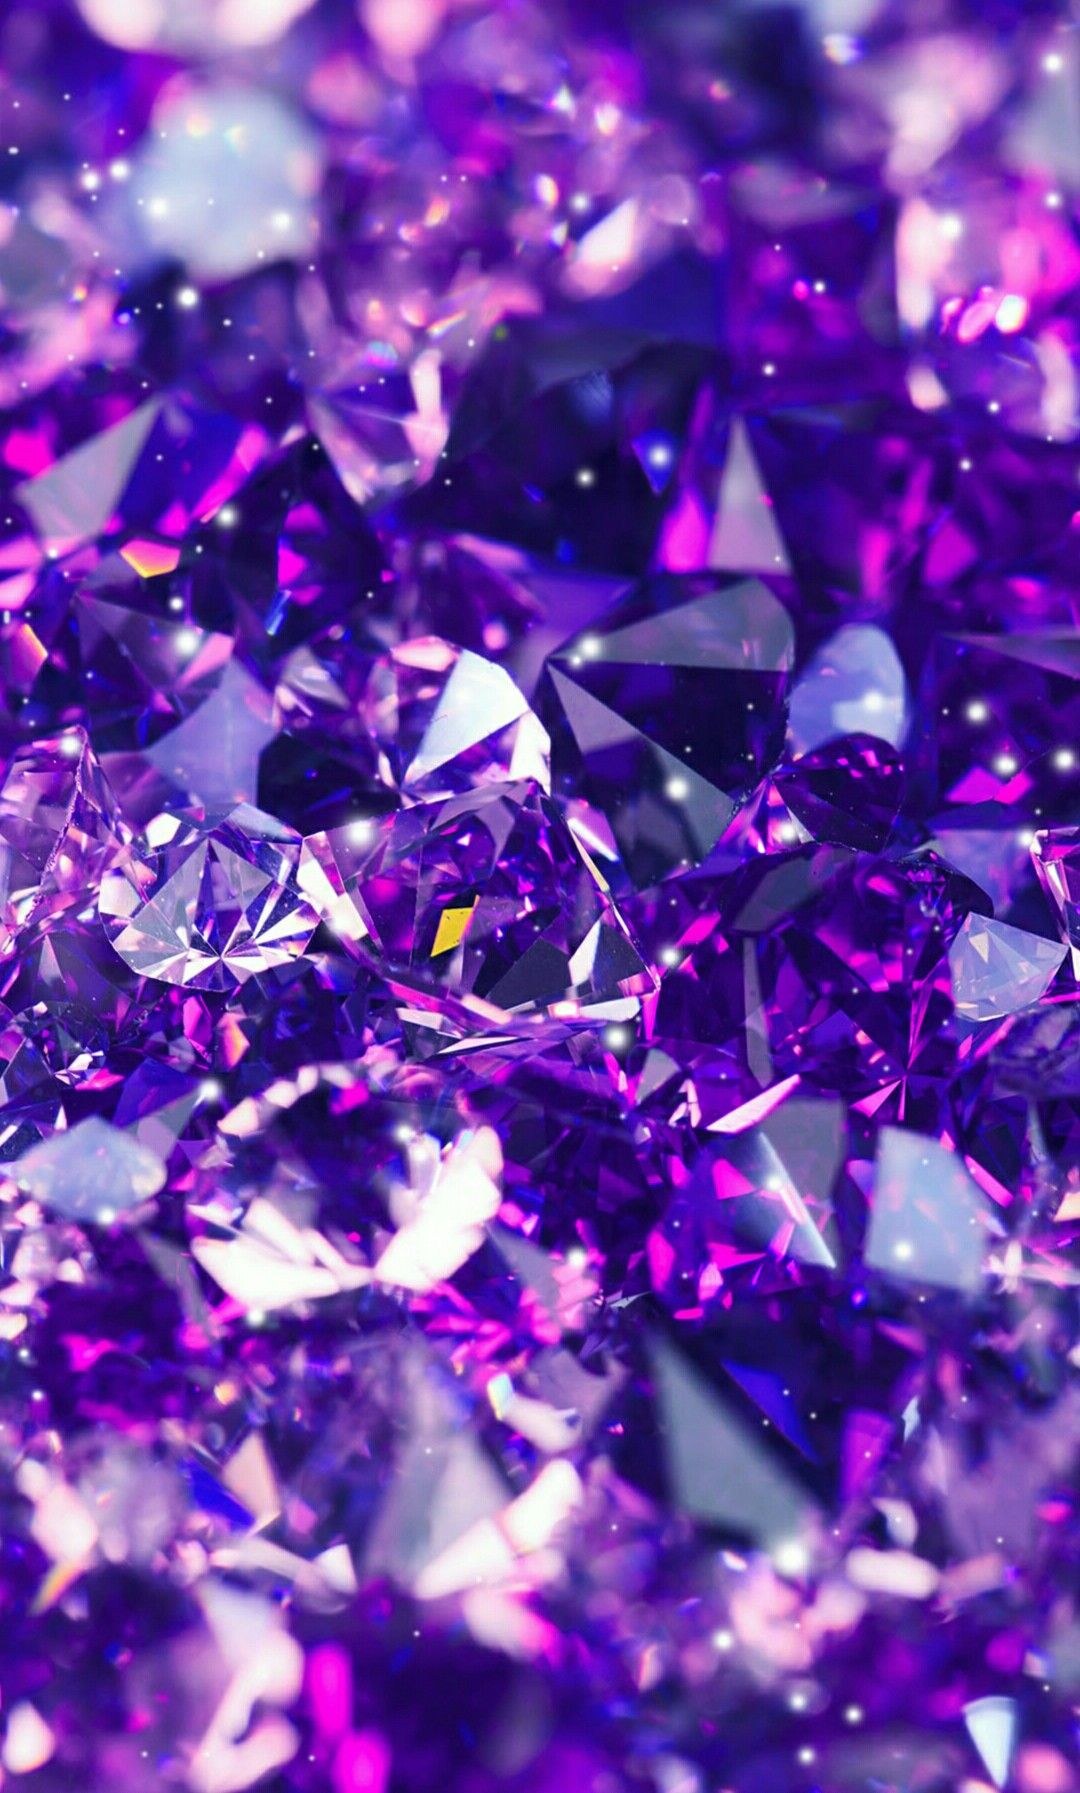 purple // gems Papel de parede galáxia roxa, Wallpapers